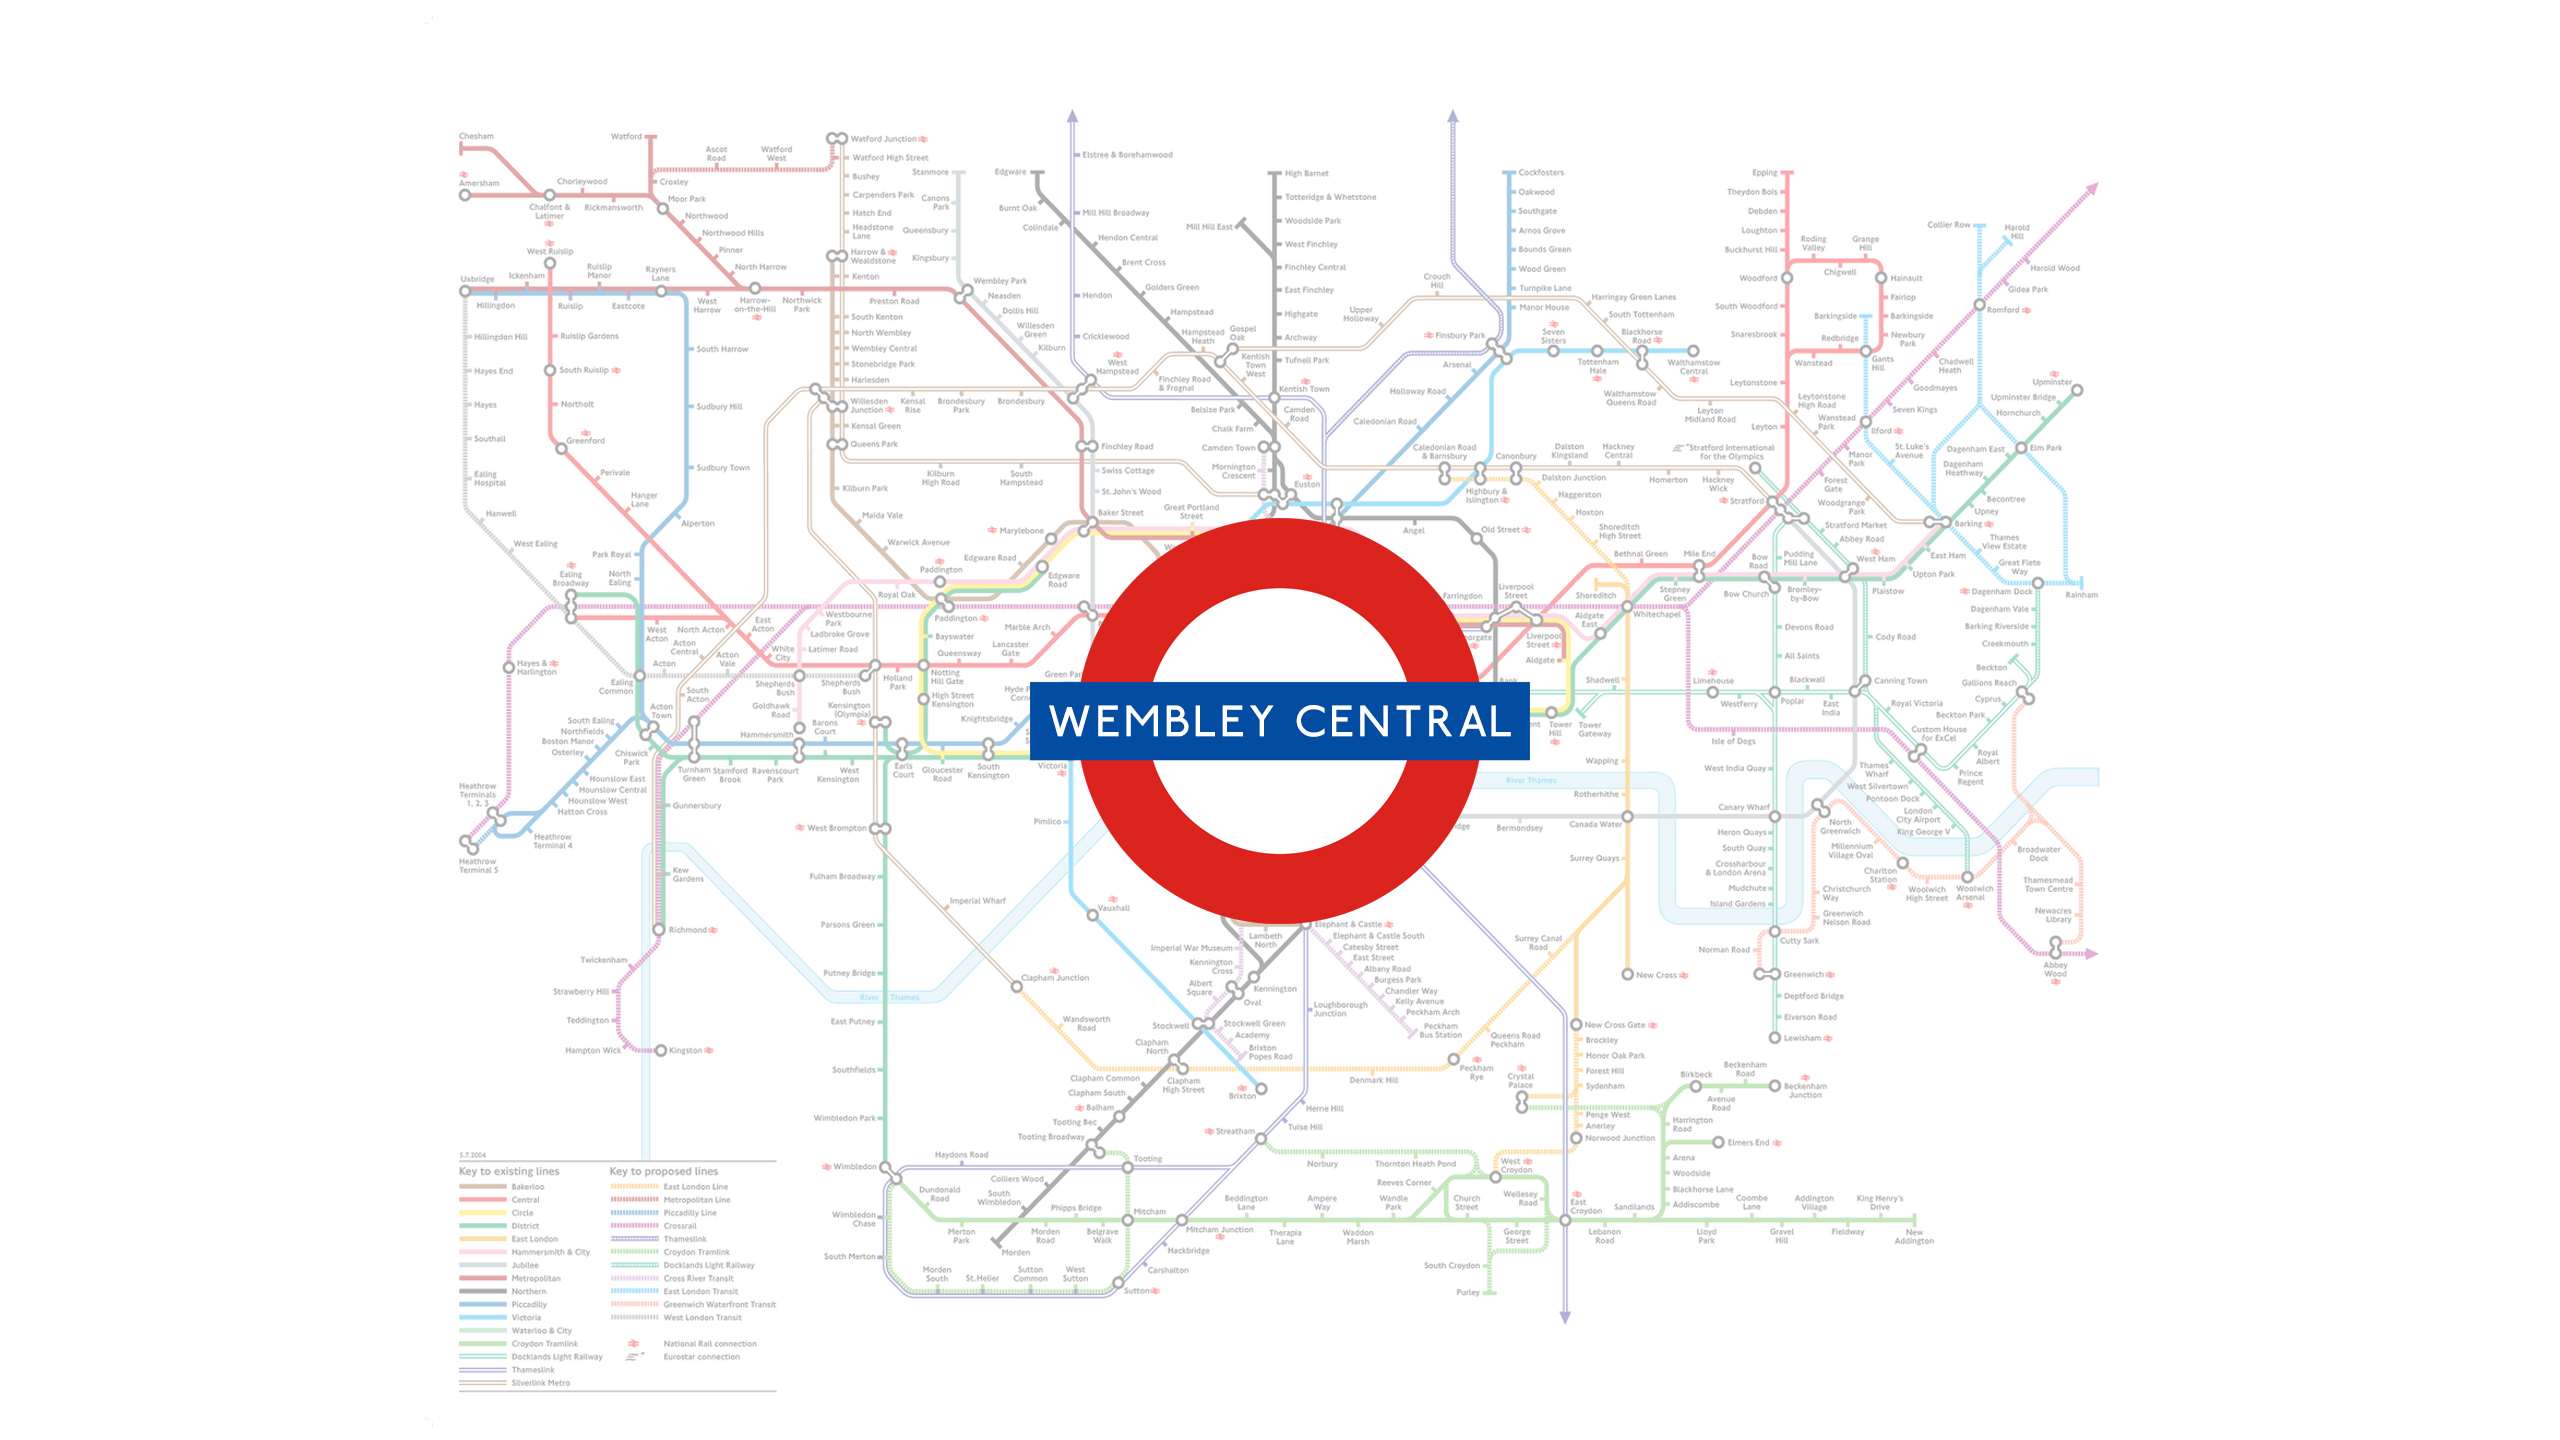 Wembley Central (Map)